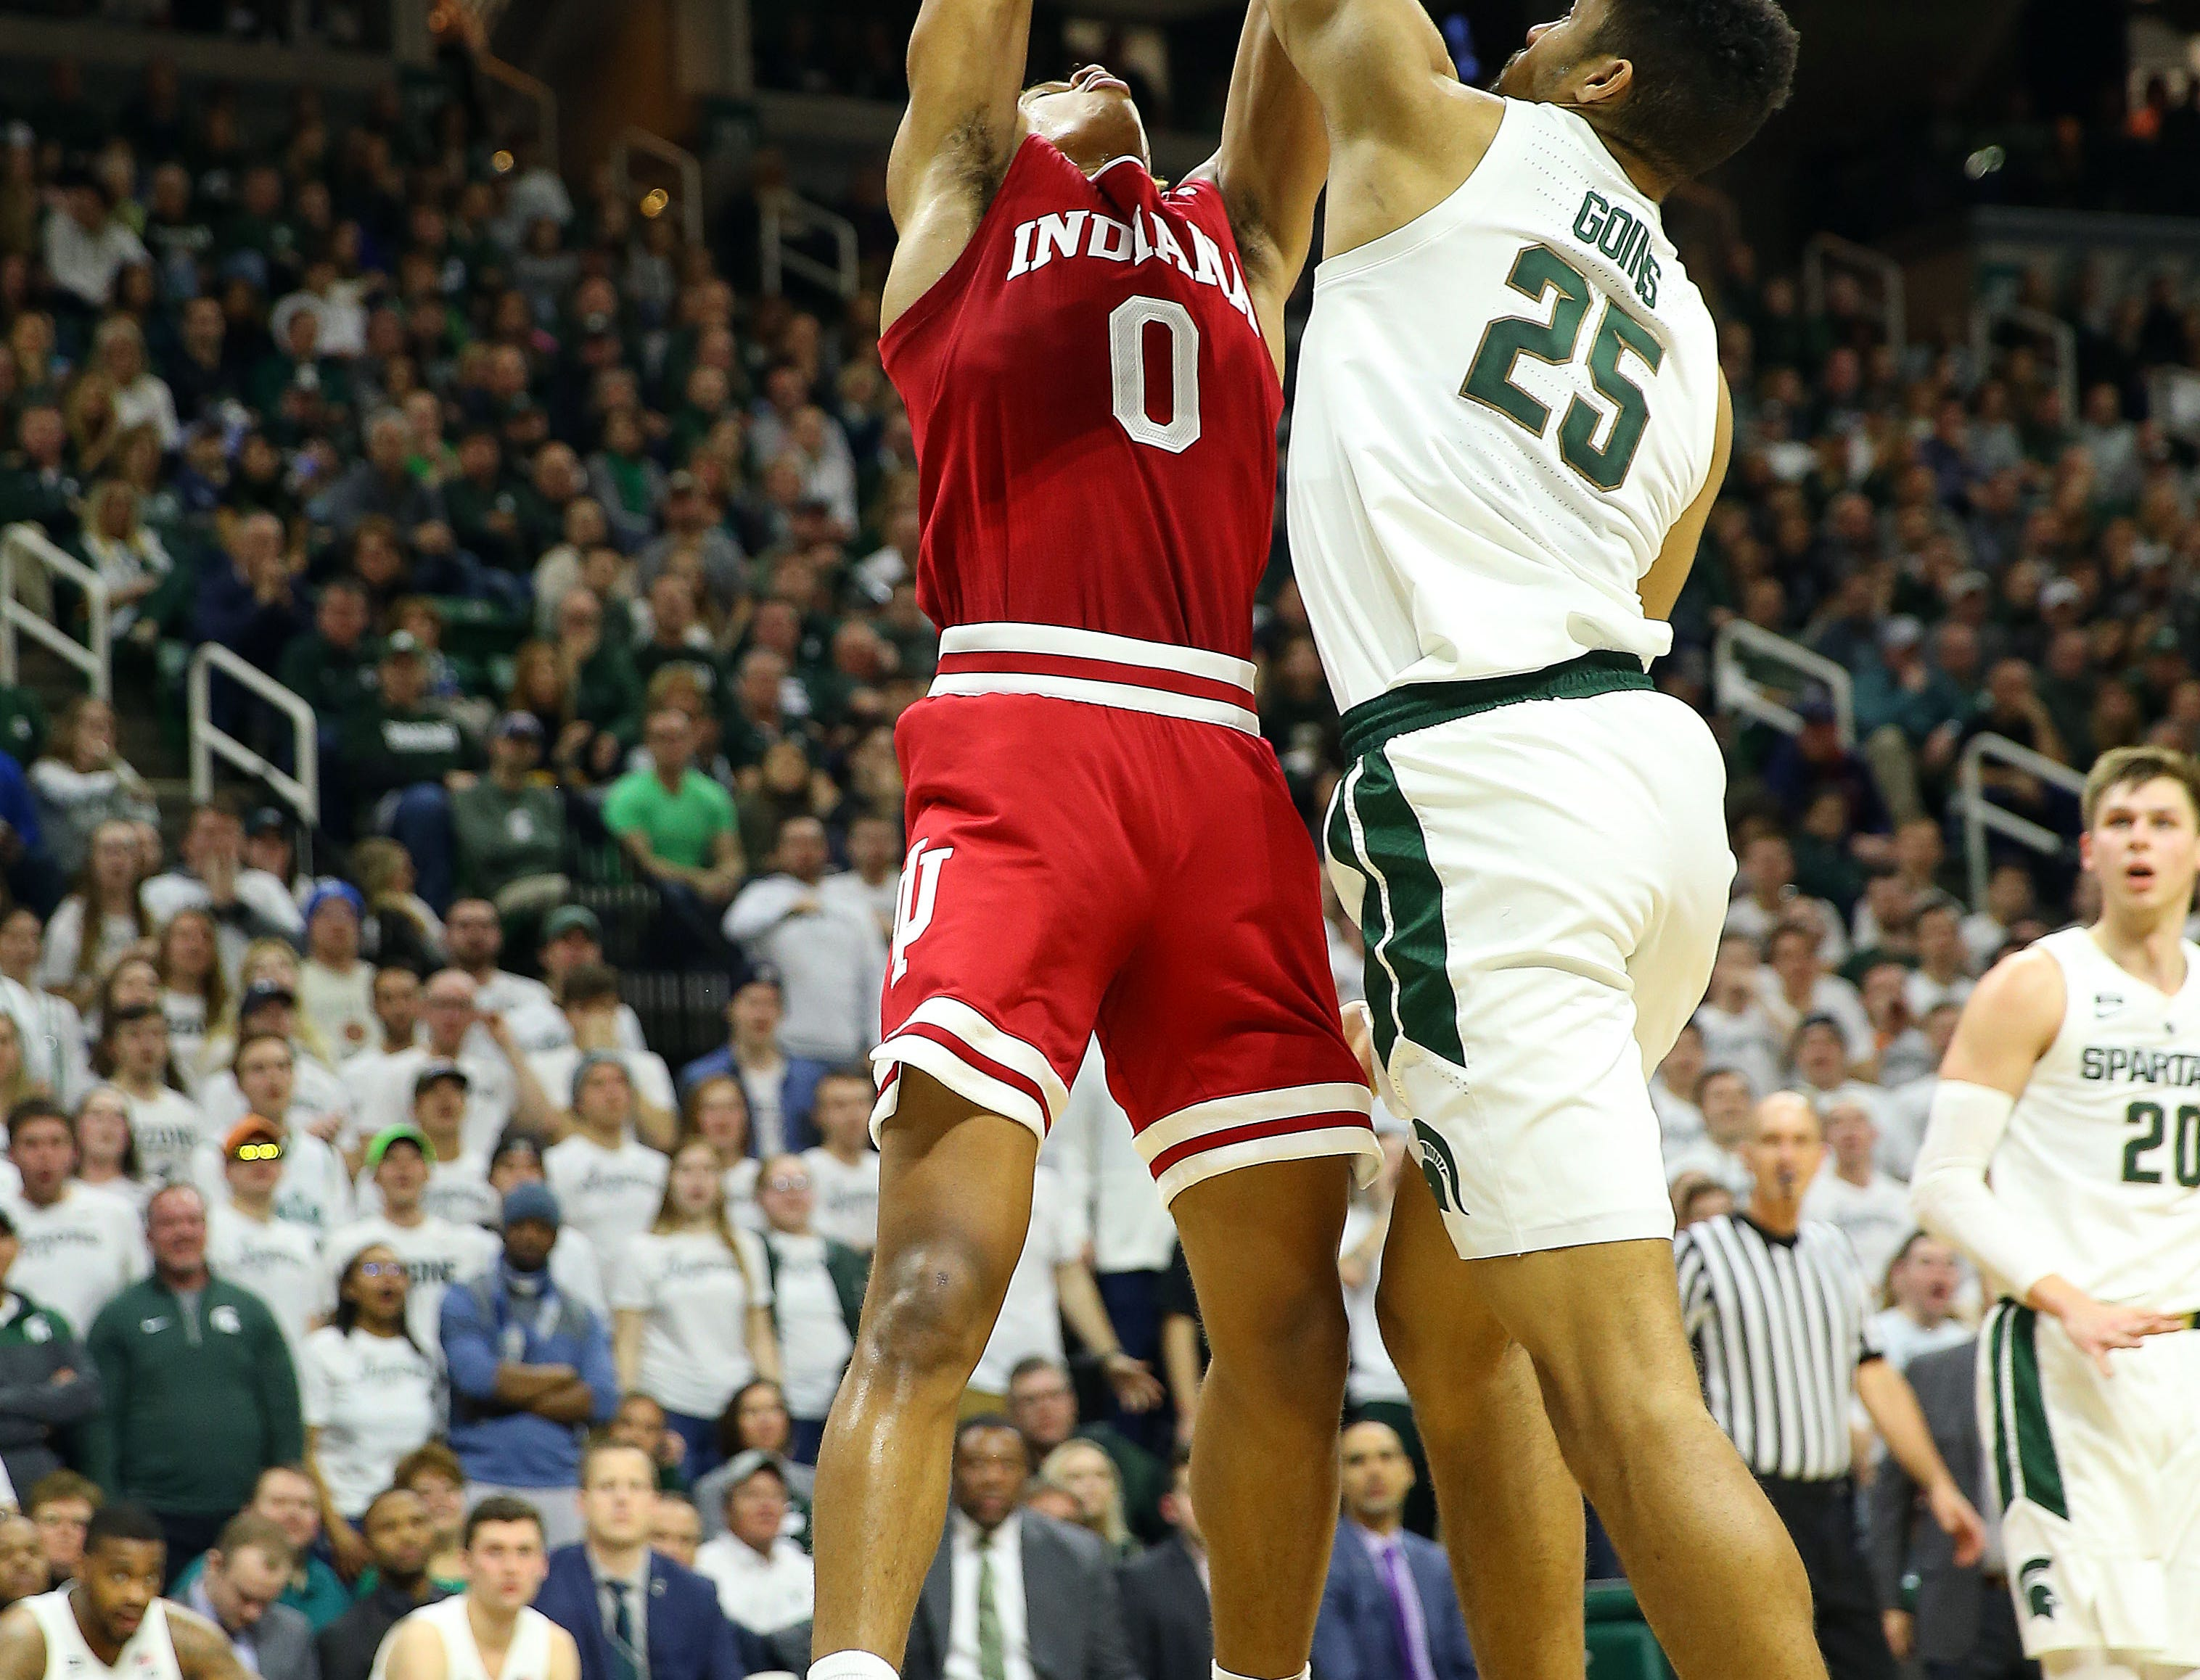 Feb 2, 2019; East Lansing, MI, USA; Indiana Hoosiers guard Romeo Langford (0) has his shot blocked by Michigan State Spartans forward Kenny Goins (25) during the first half  at the Breslin Center. Mandatory Credit: Mike Carter-USA TODAY Sports